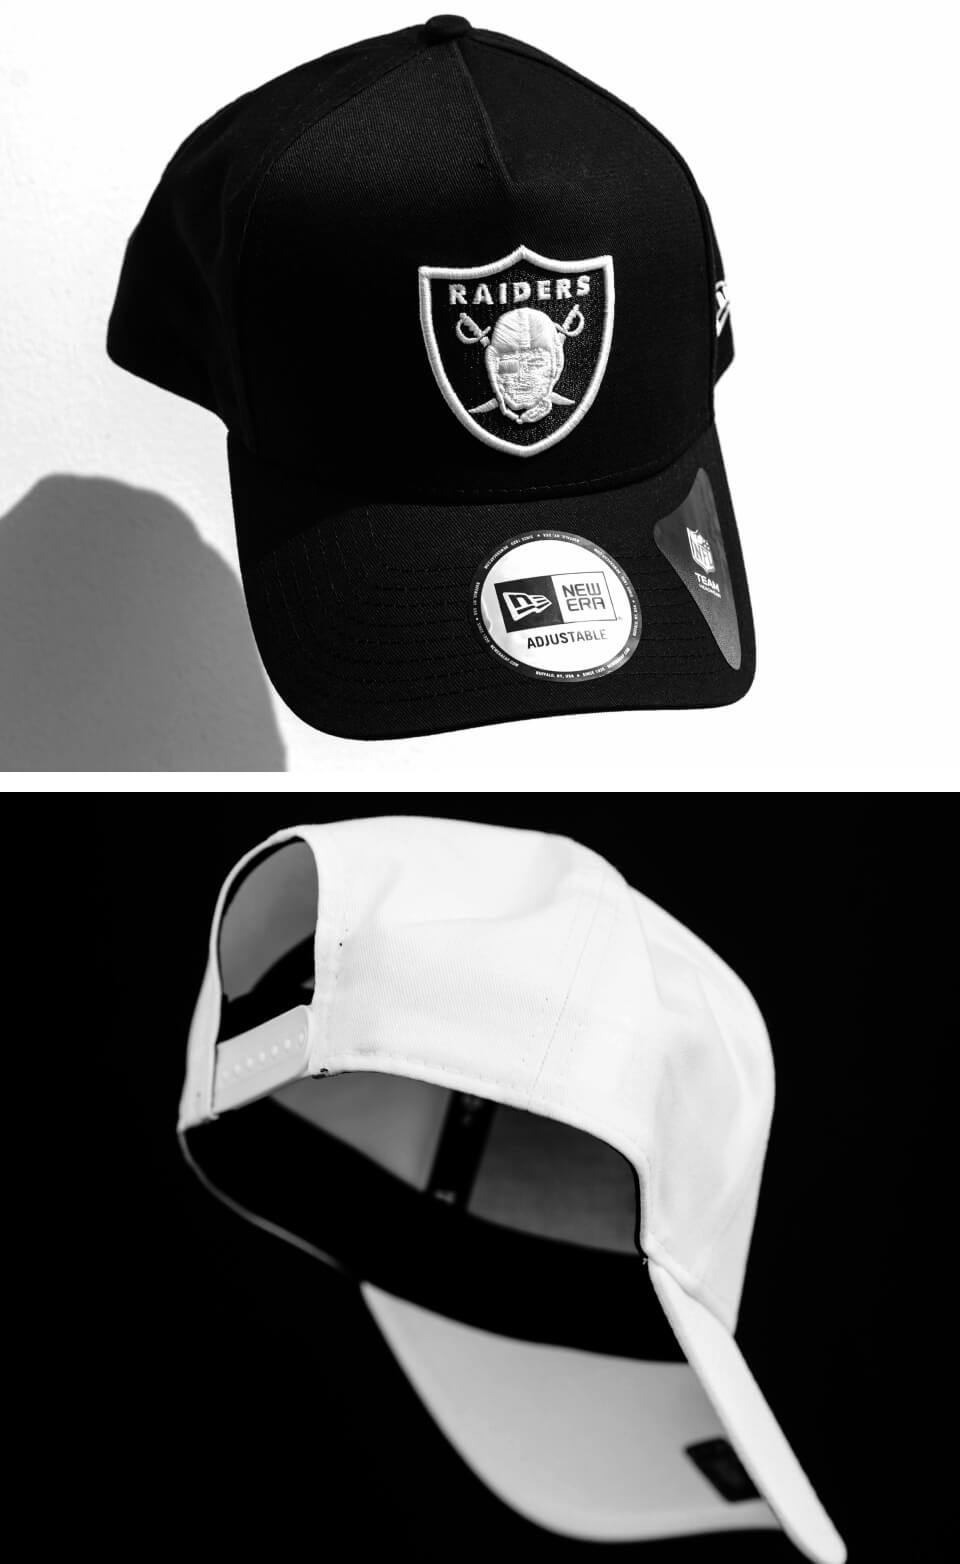 Hatstore Exclusive x Raiders Inverted